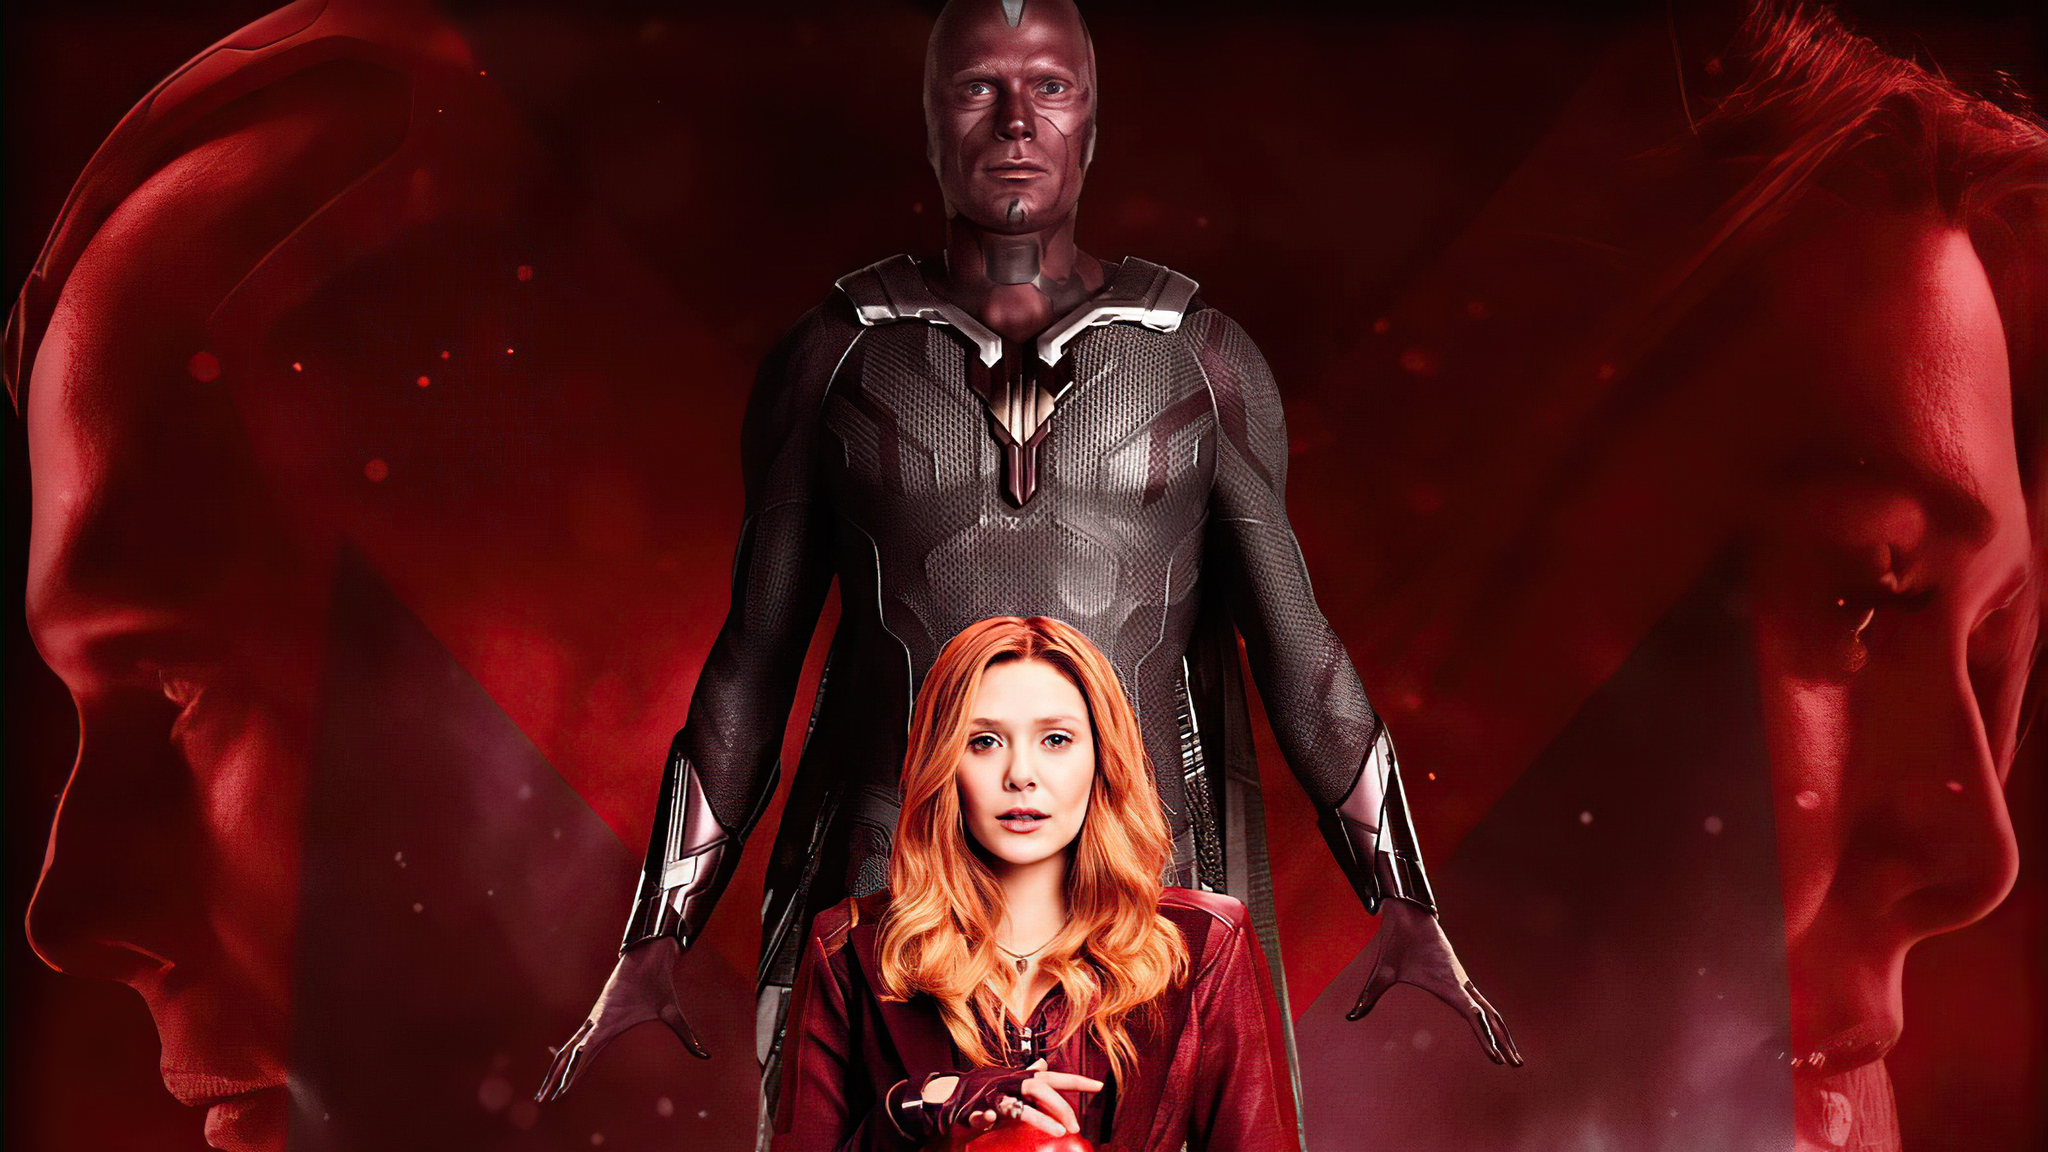 wanda-and-vision-fan-poster-4k-n0.jpg